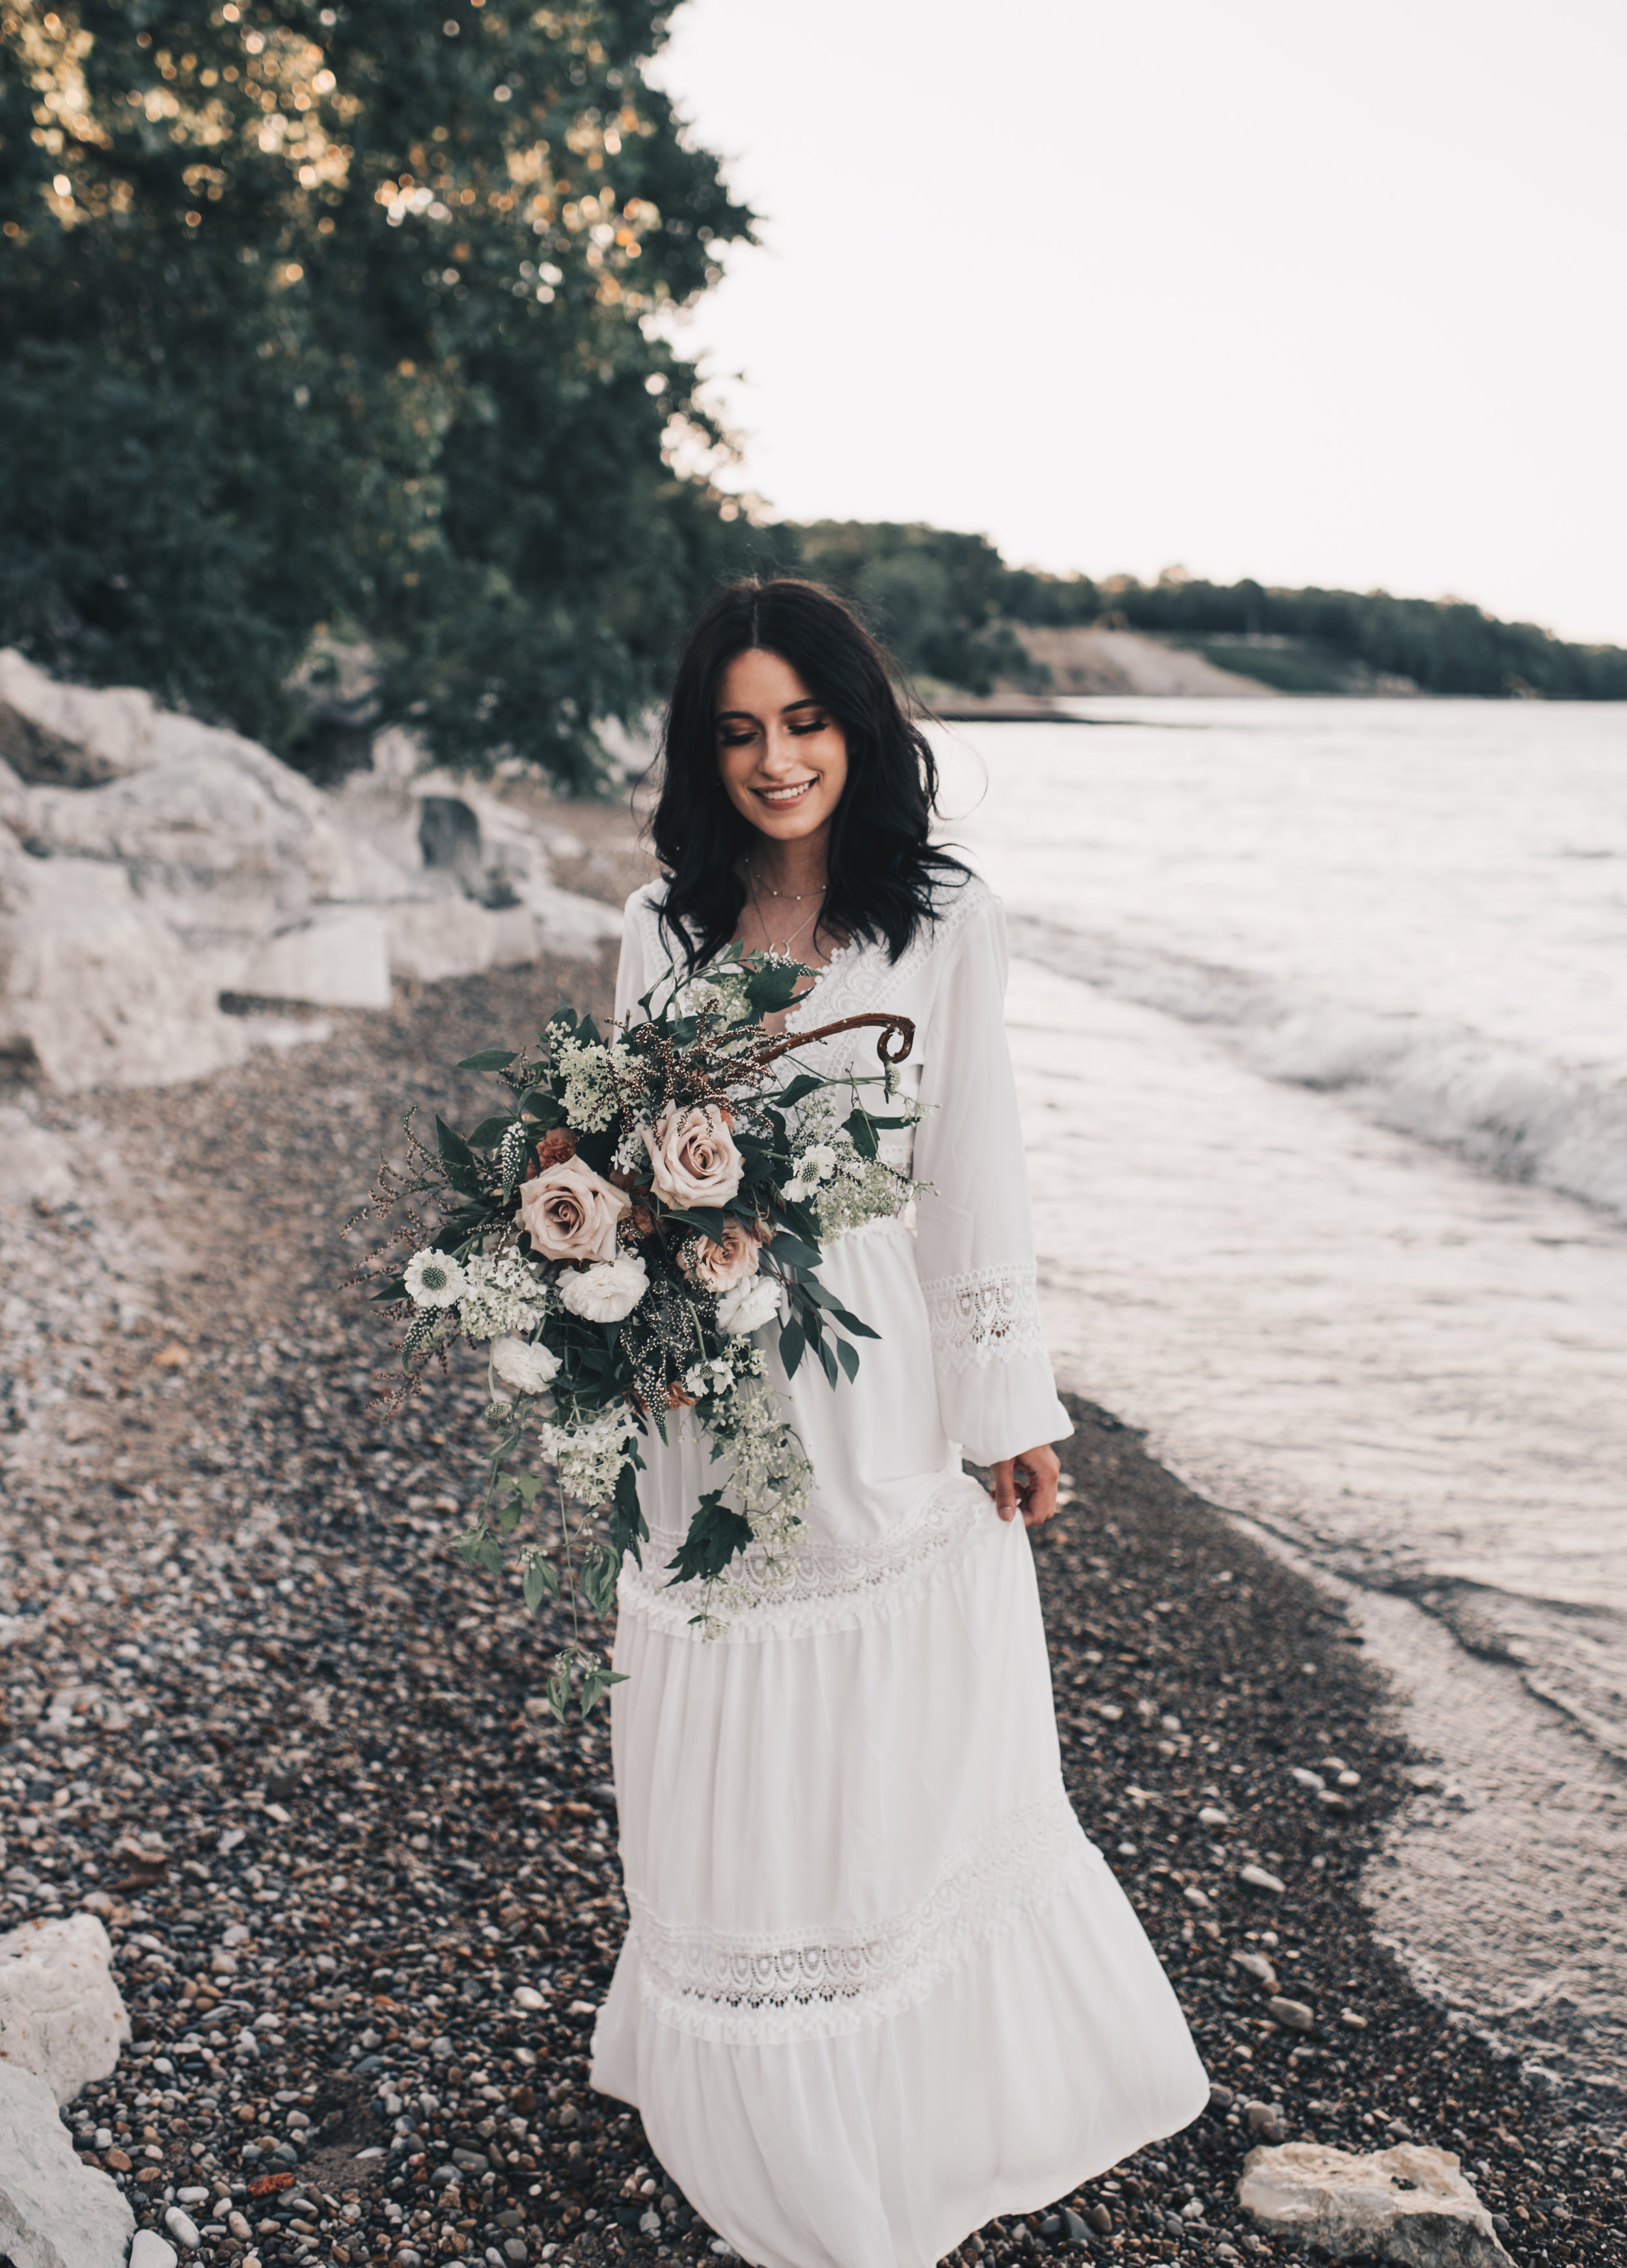 Lake Michigan Beach Session, Lake Michigan Beach Elopement, Summer Beach Elopement, Dreamy Beach Elopement, Illinois Beach Elopement, Indiana Dunes Elopement, Warren Dunes Elopement